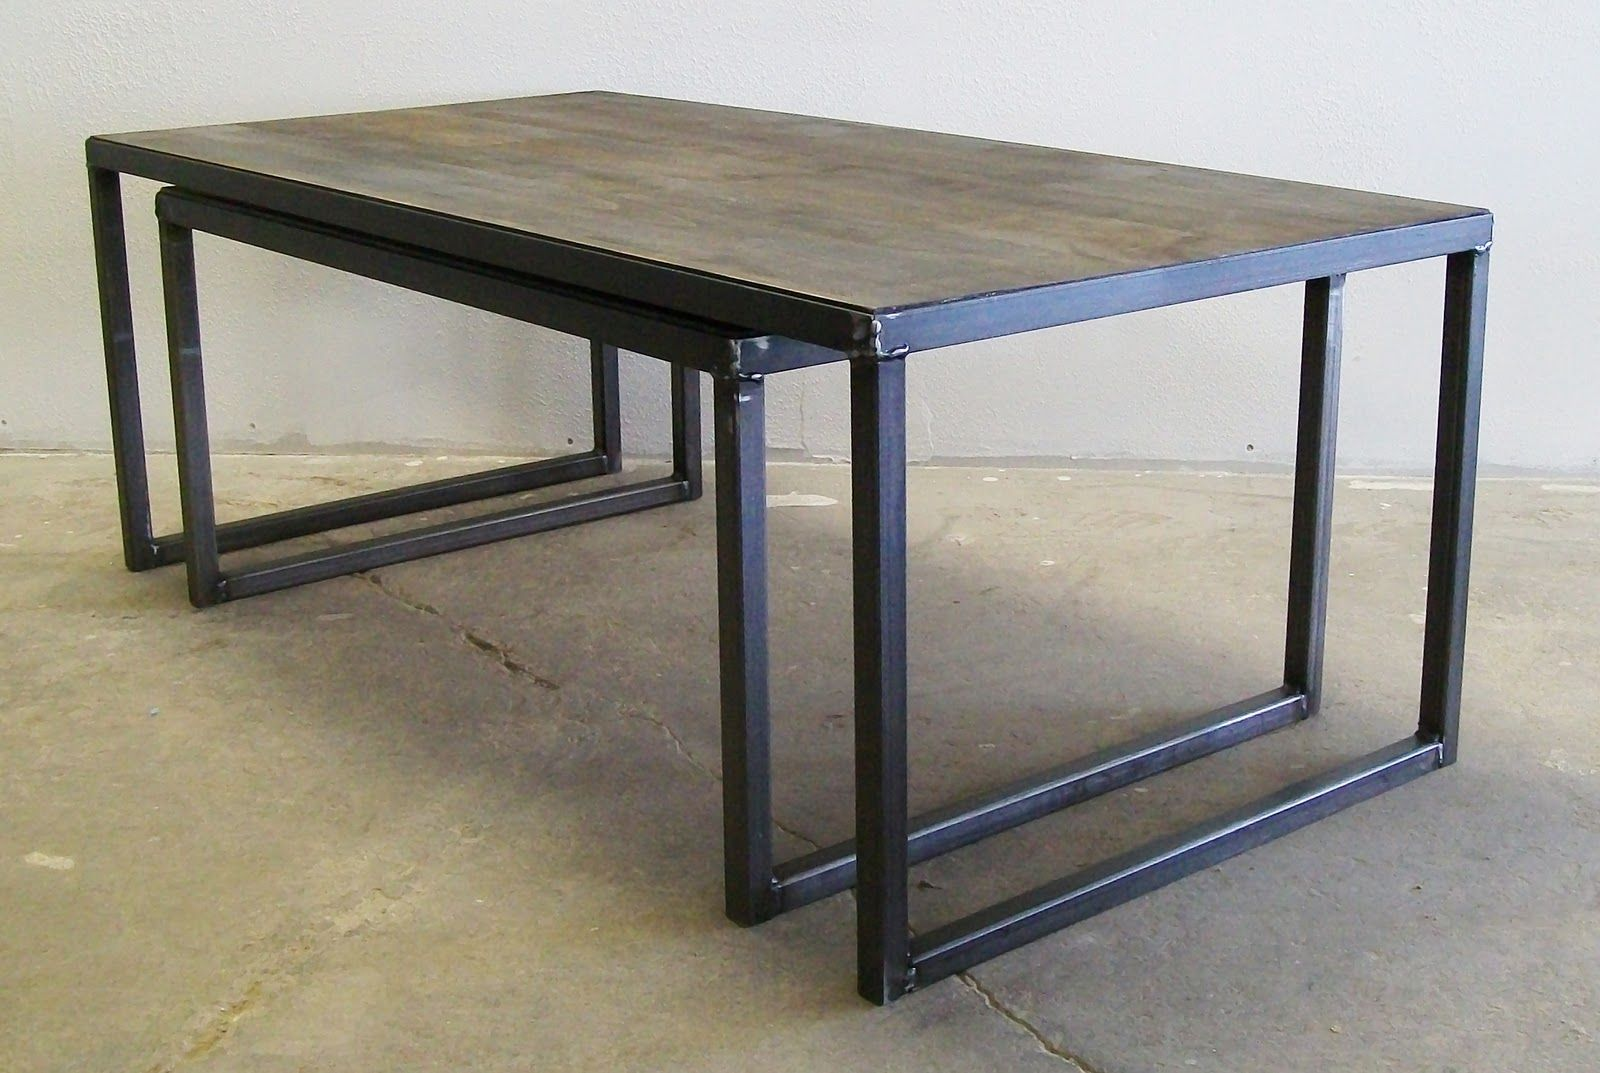 Furniture Amalgam Steel Nesting Coffee Table With Black Steel Legs Construction And Rectangular